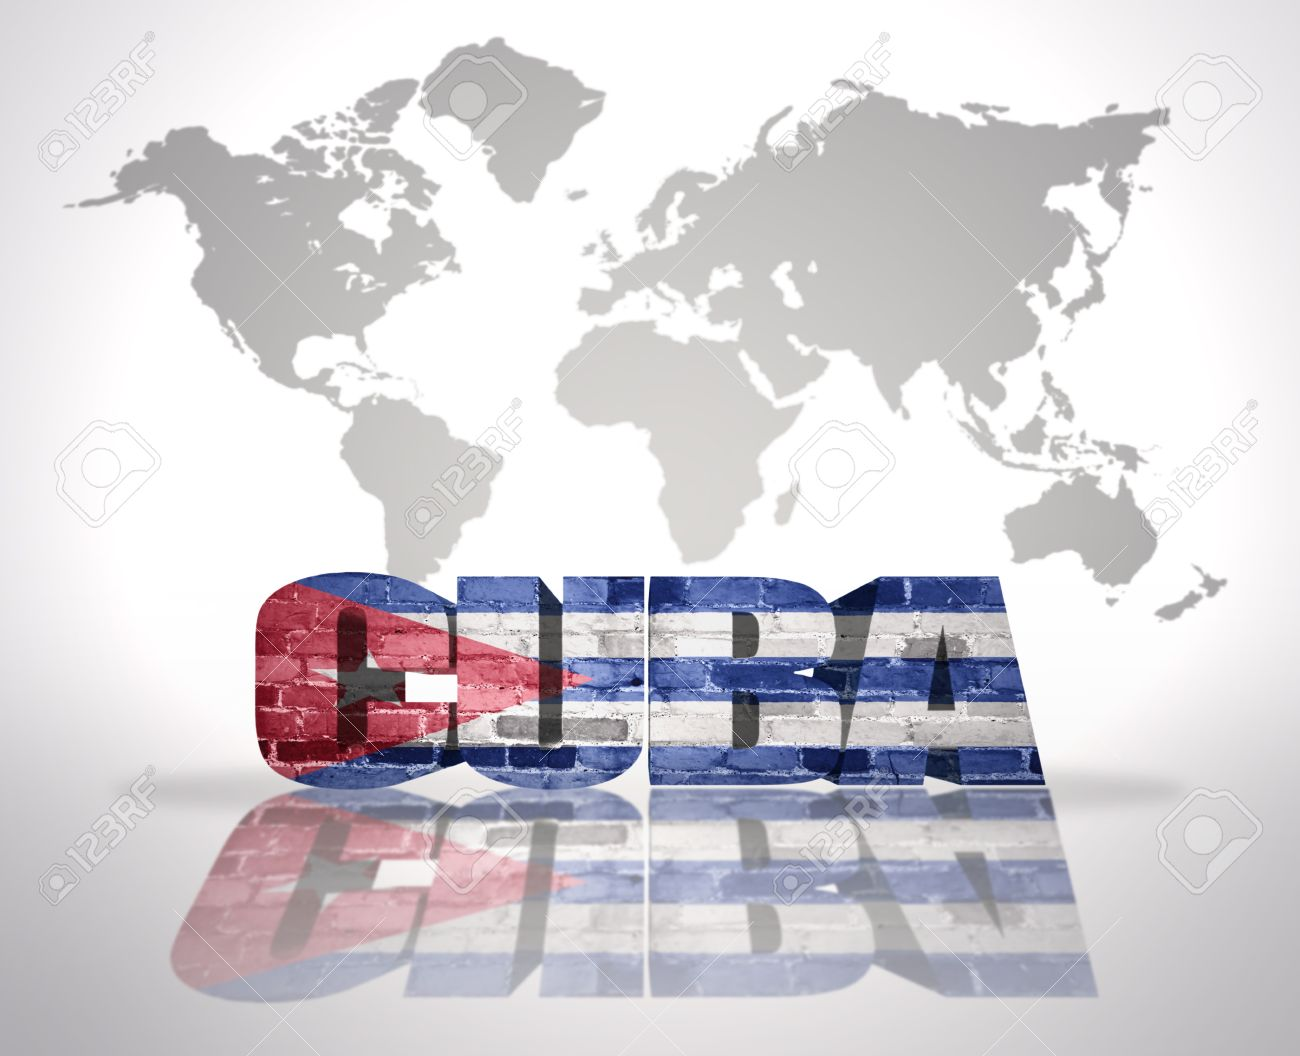 Word Cuba with Cuban Flag on a world map background